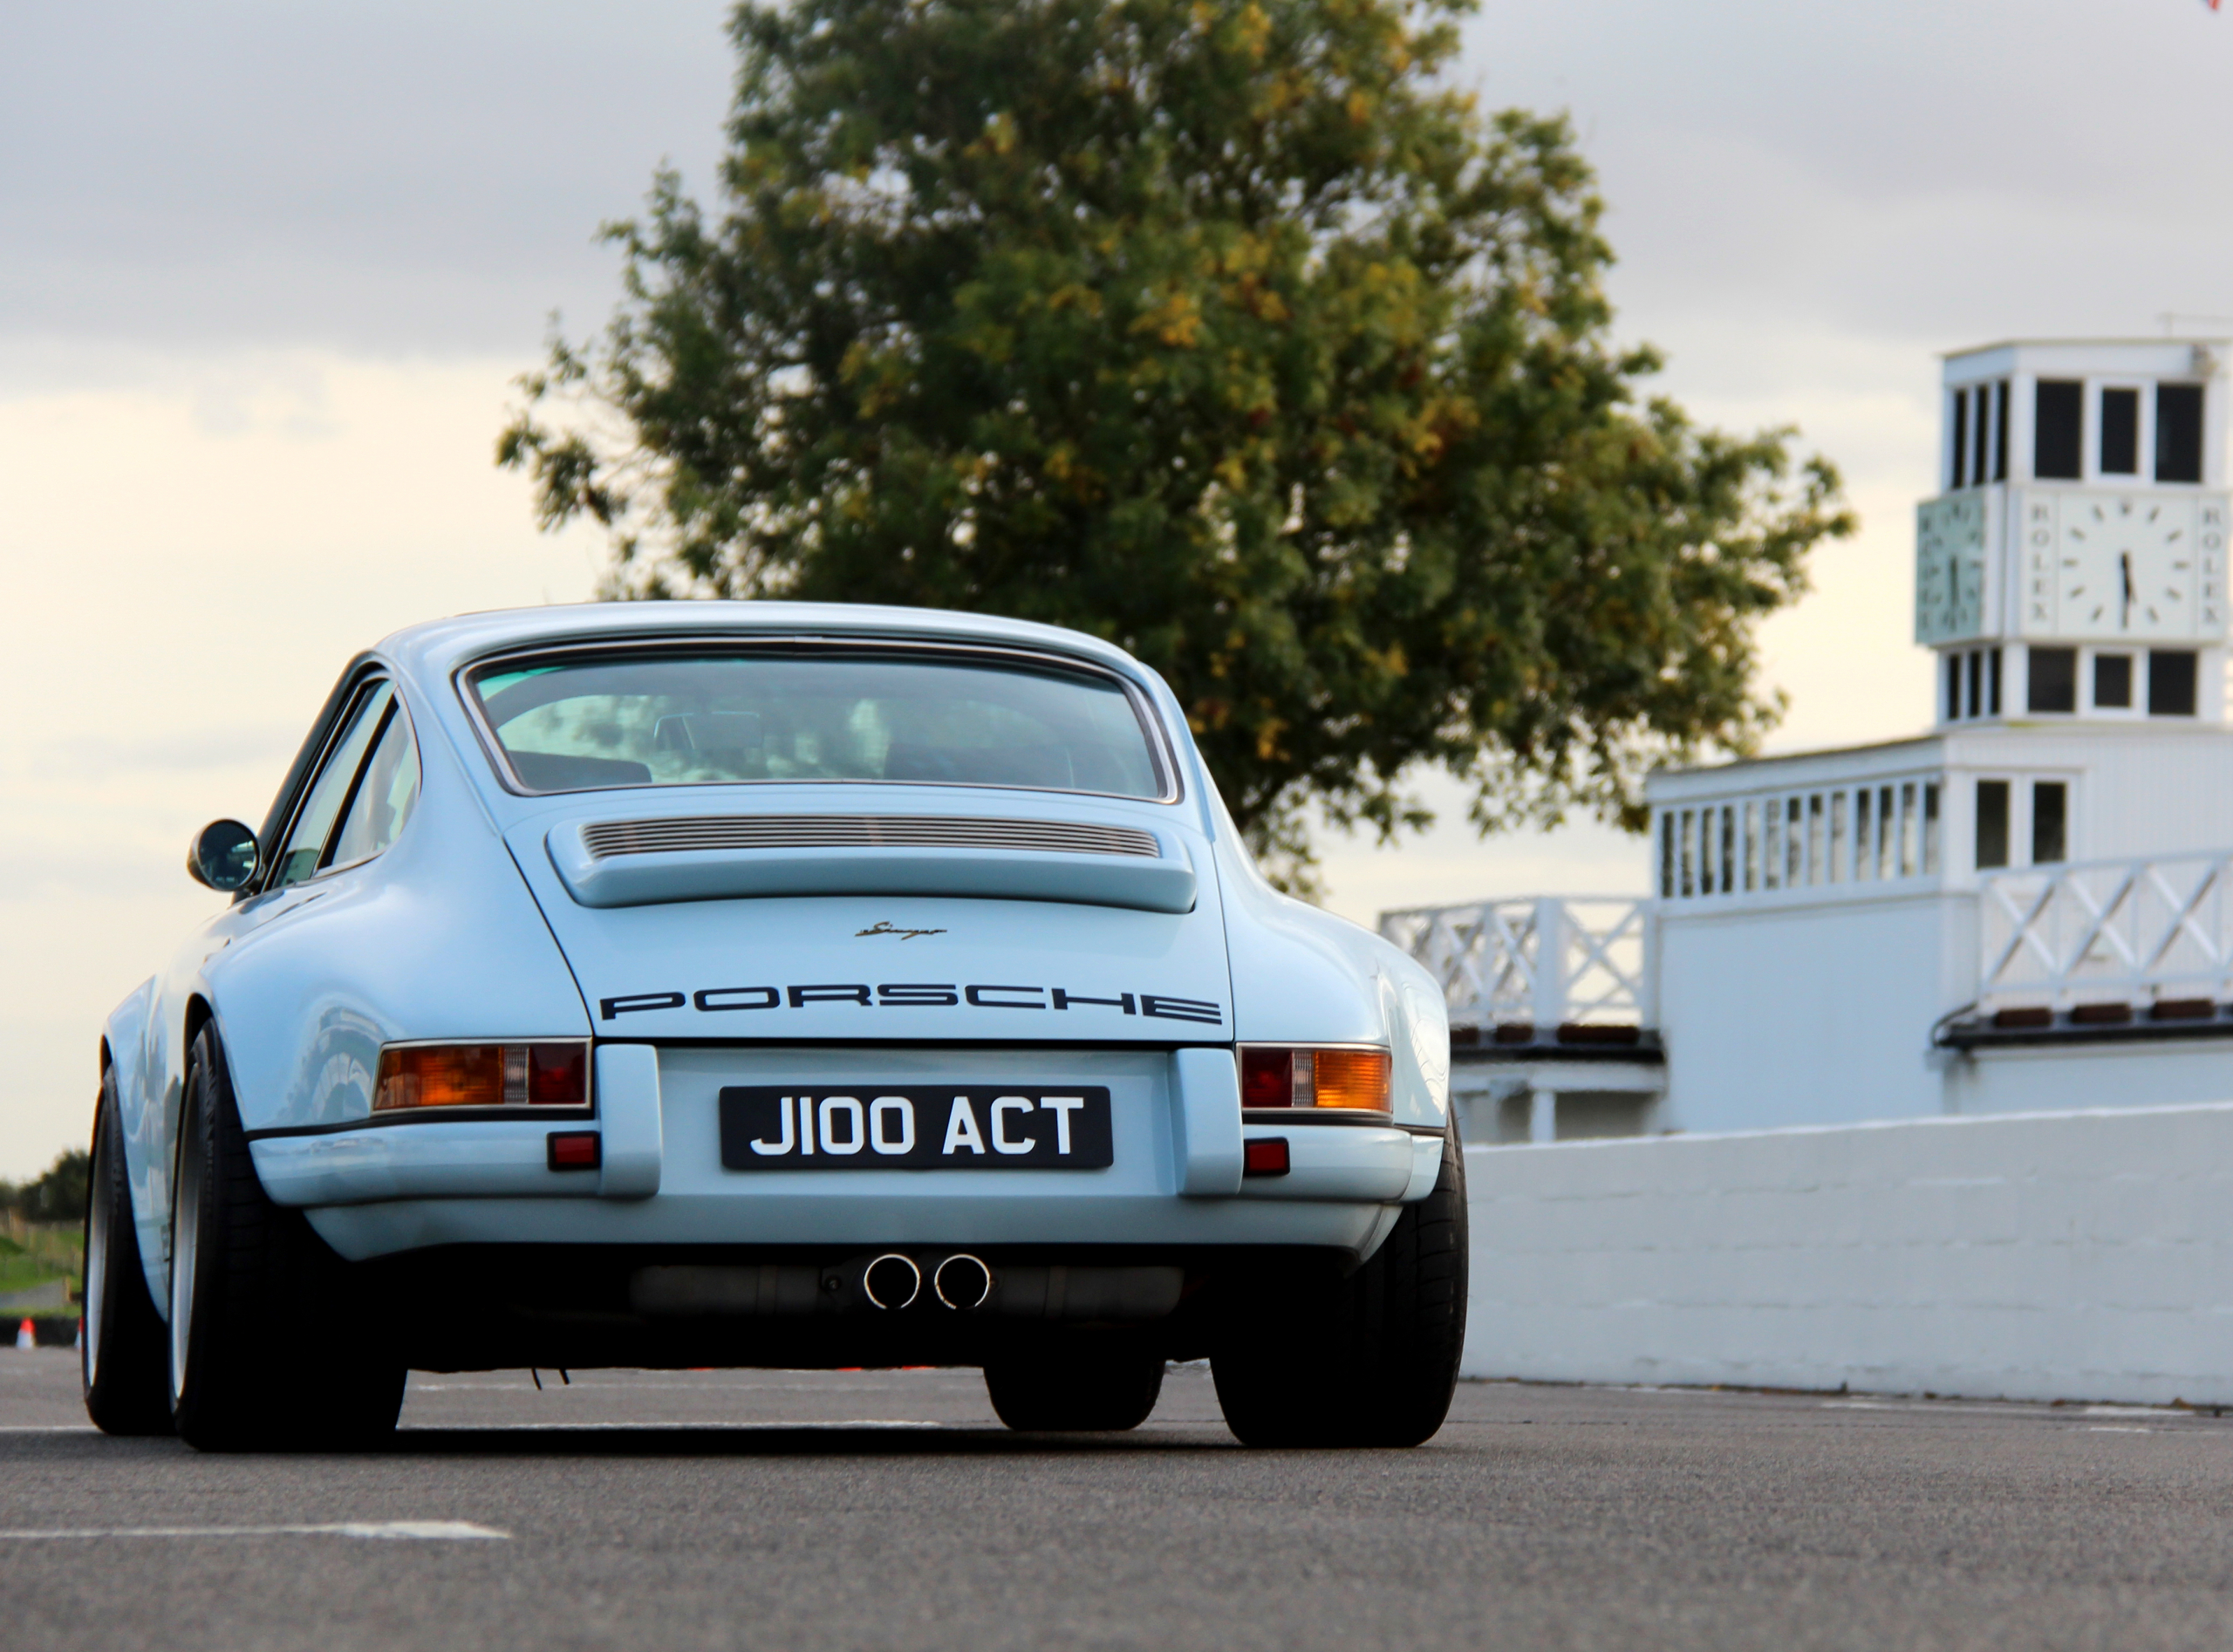 Porsche 911 by Singer Dorset Goodwood rear